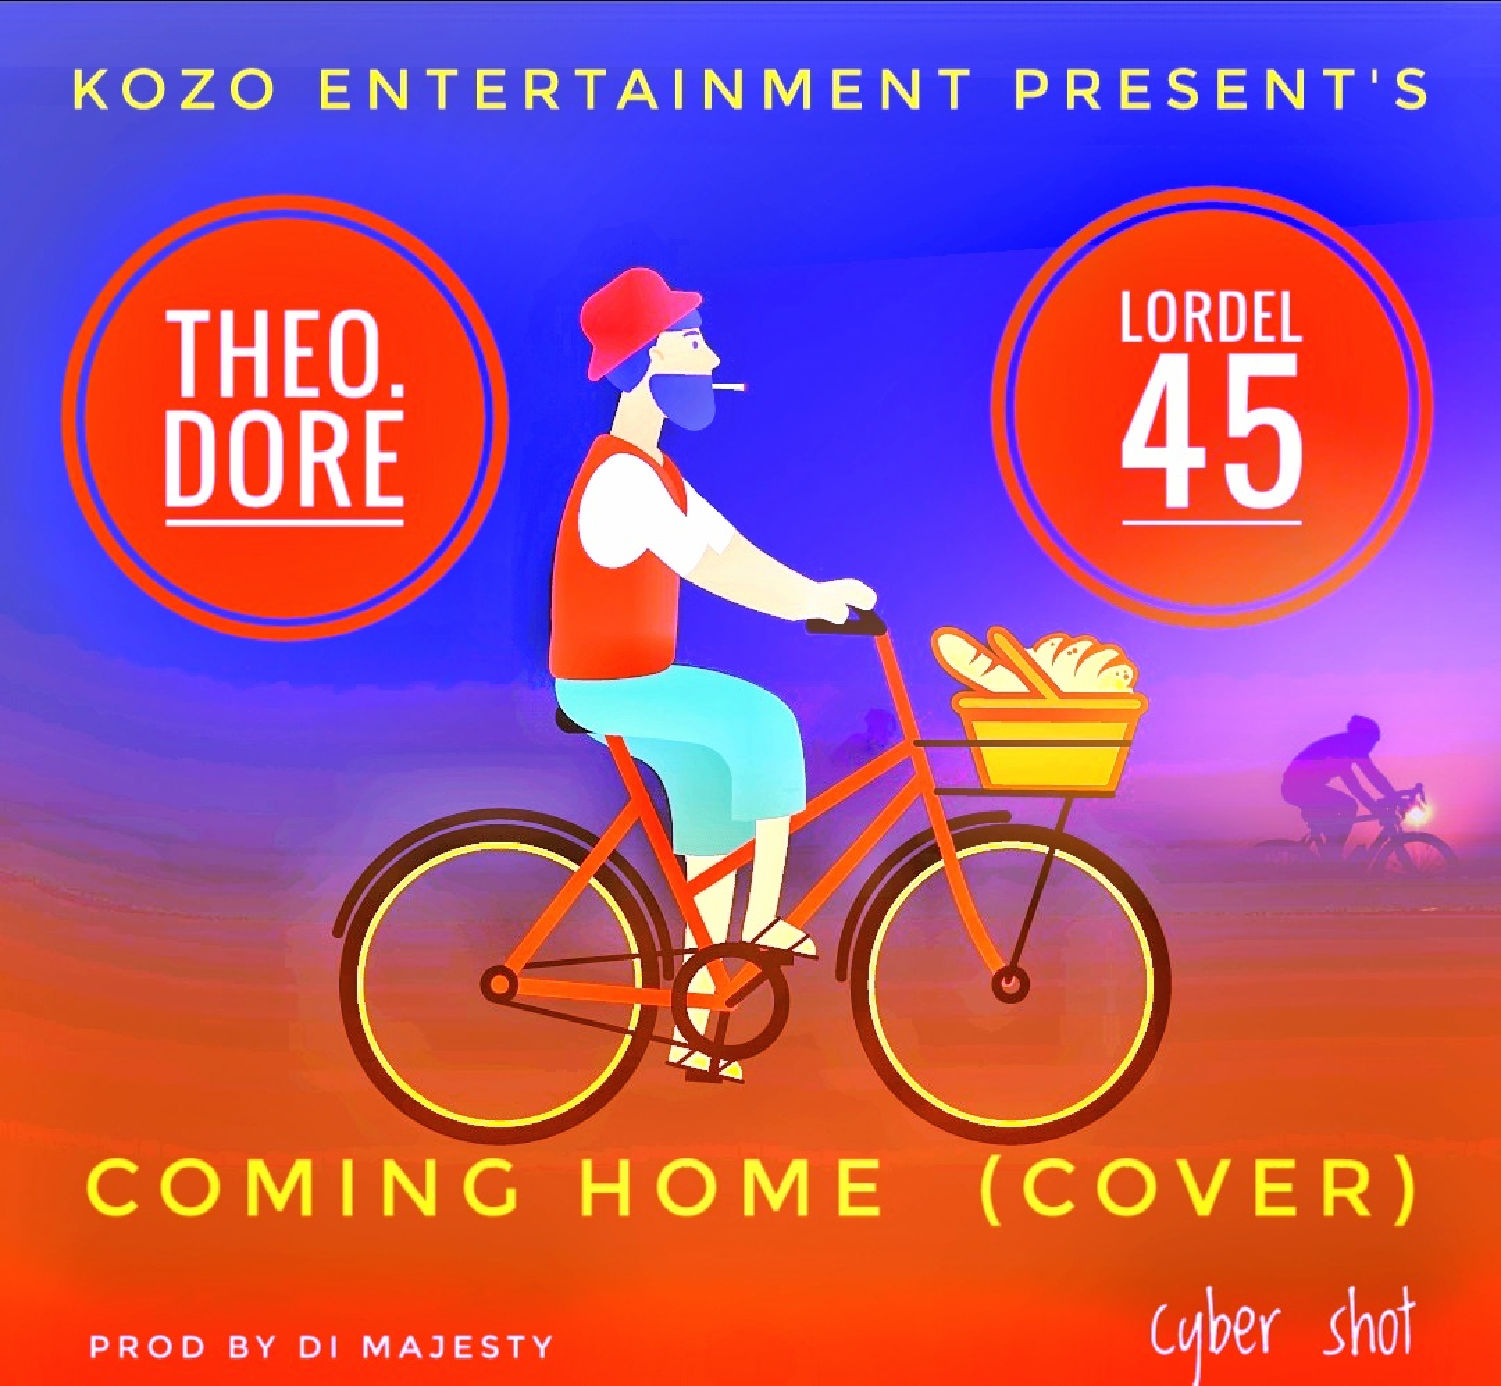 Theo Dore X Lord EL 45 Coming Home